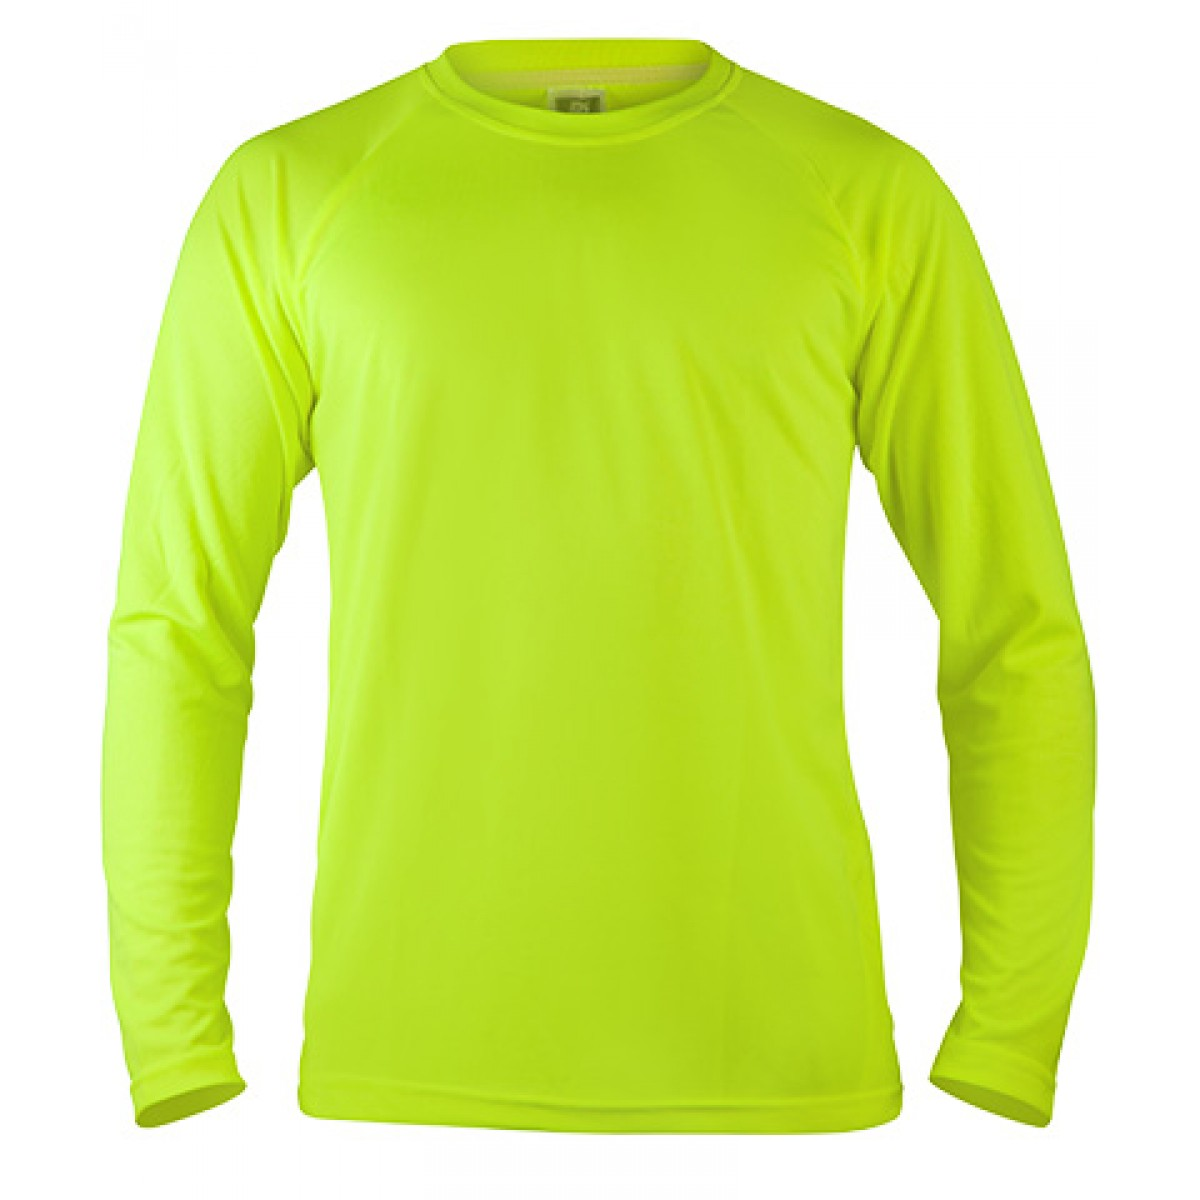 Long Sleeve Performance -Safety Green-XL